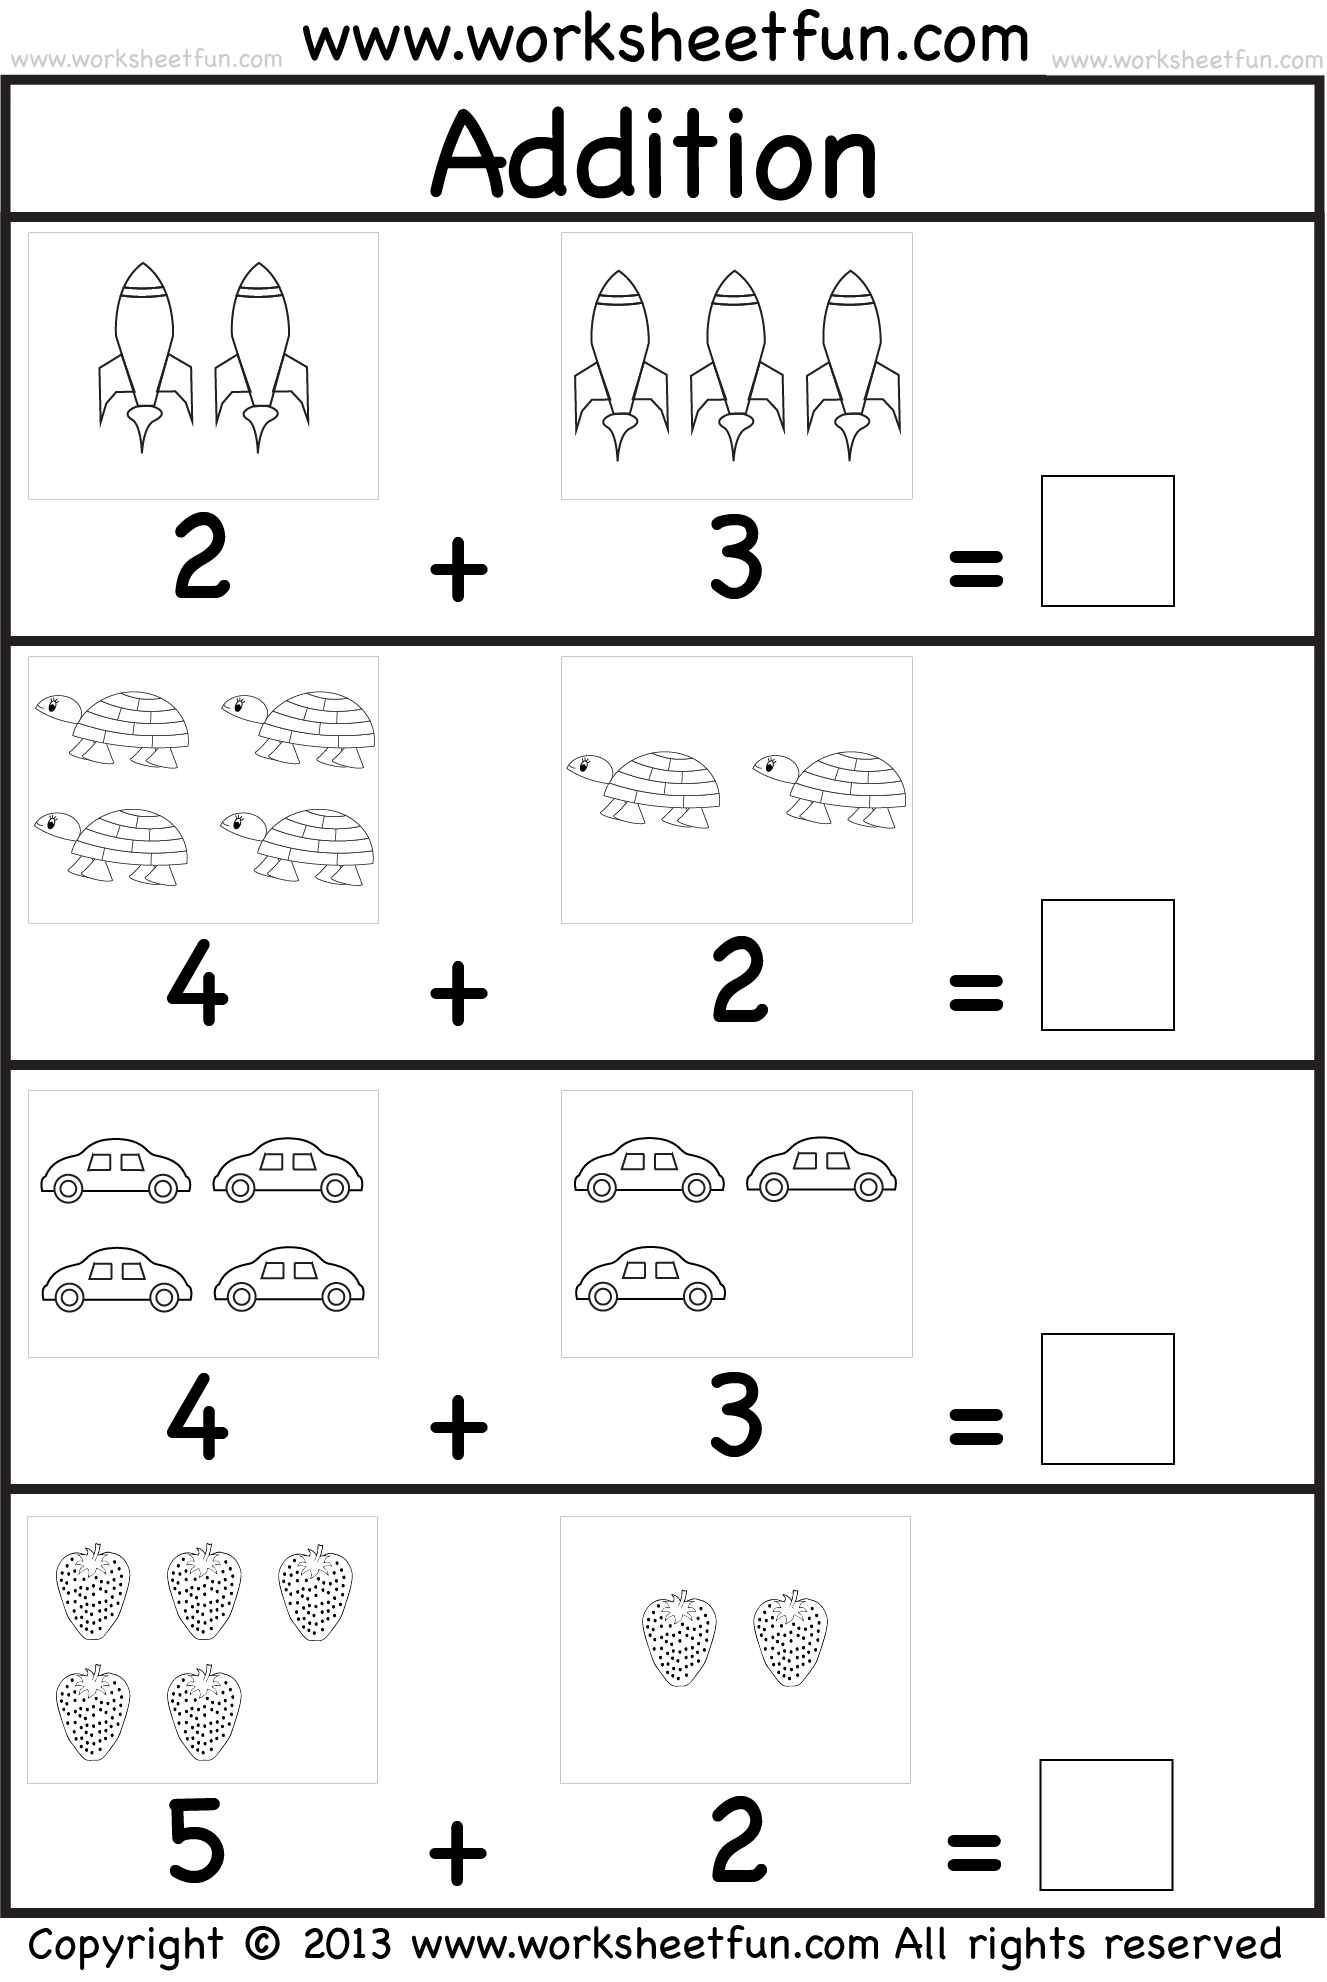 worksheet Kindergarten Math Worksheets Free addition worksheet this site has great free worksheets for everything from abcs to math